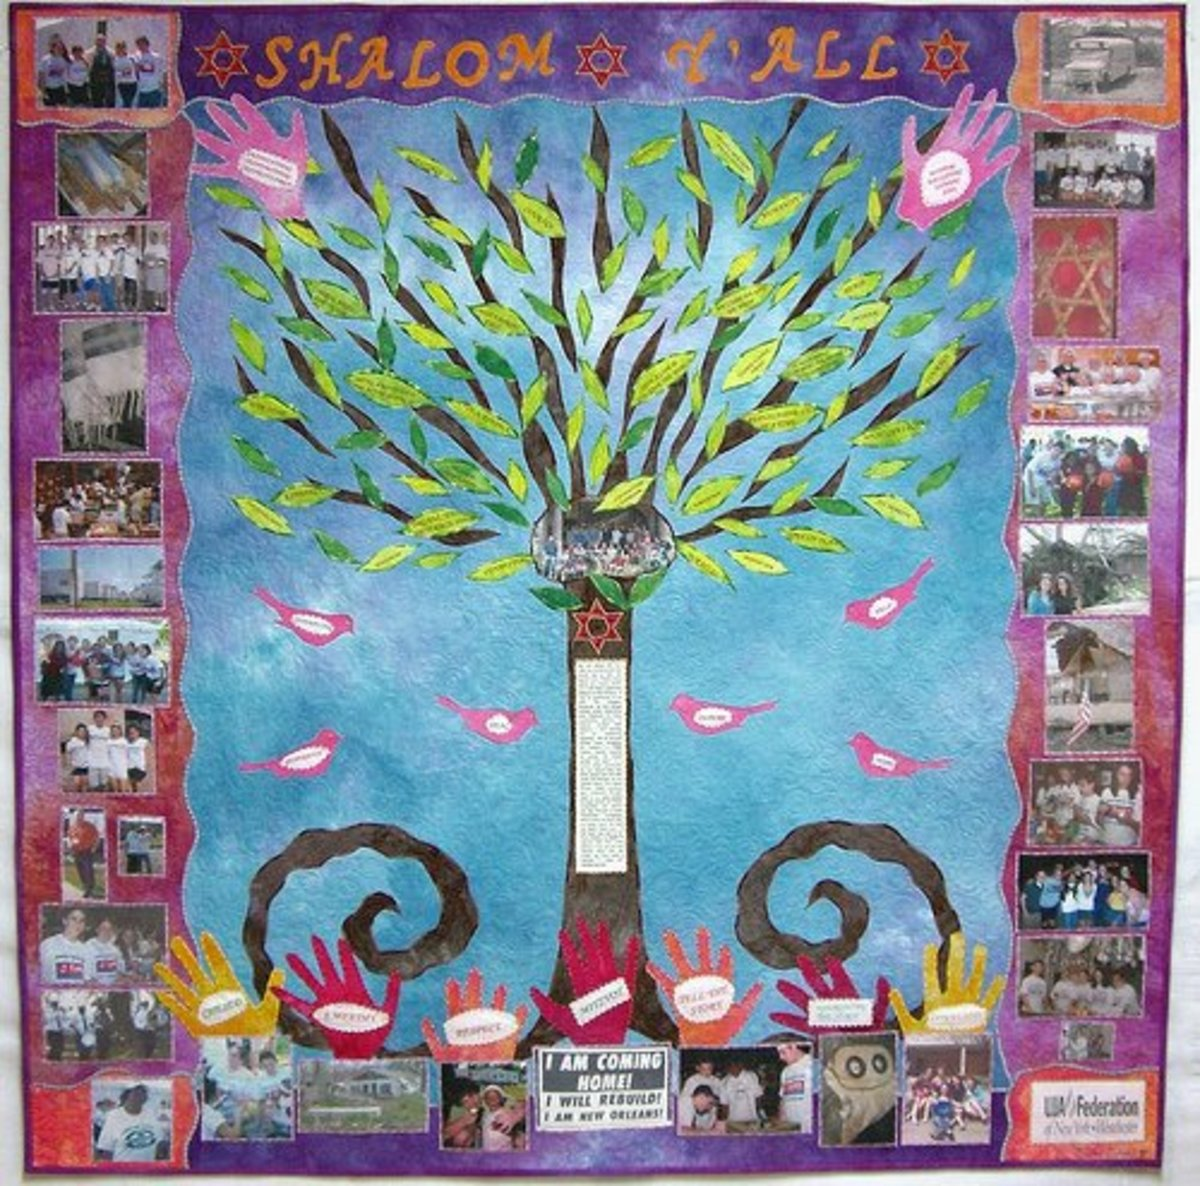 This quilt by Susan Schrott uses photo transfer, appliquéd and printed words, and appliquéd leaves, birds, hands and other motifs.